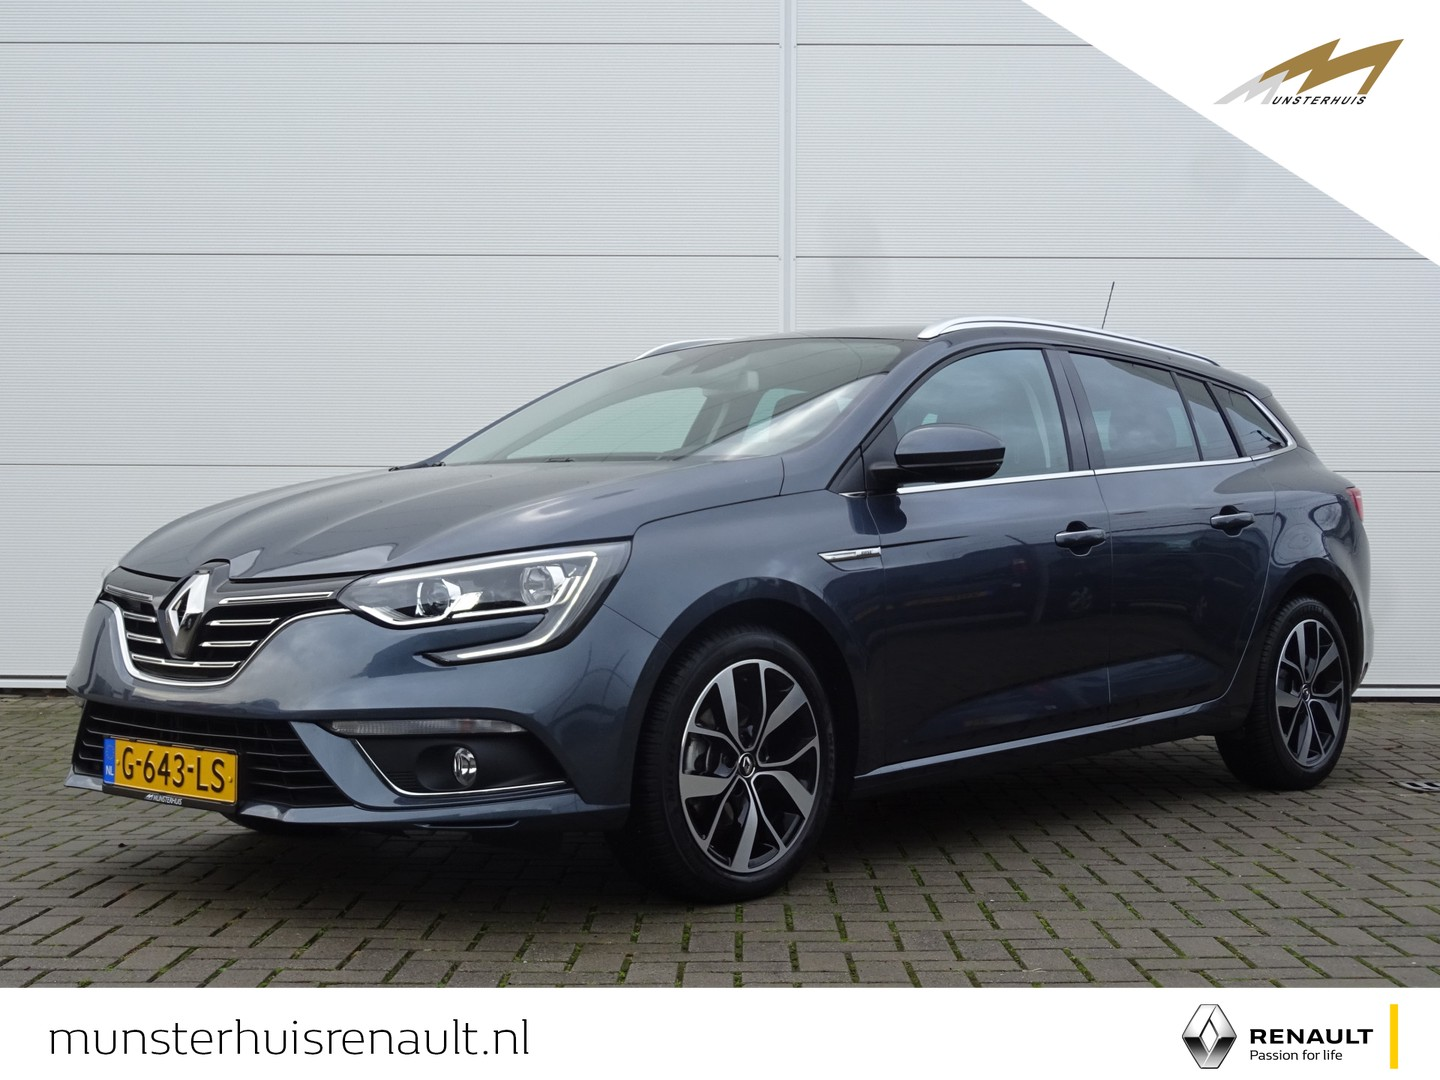 Renault Mégane Estate tce 140 bose - all-season banden